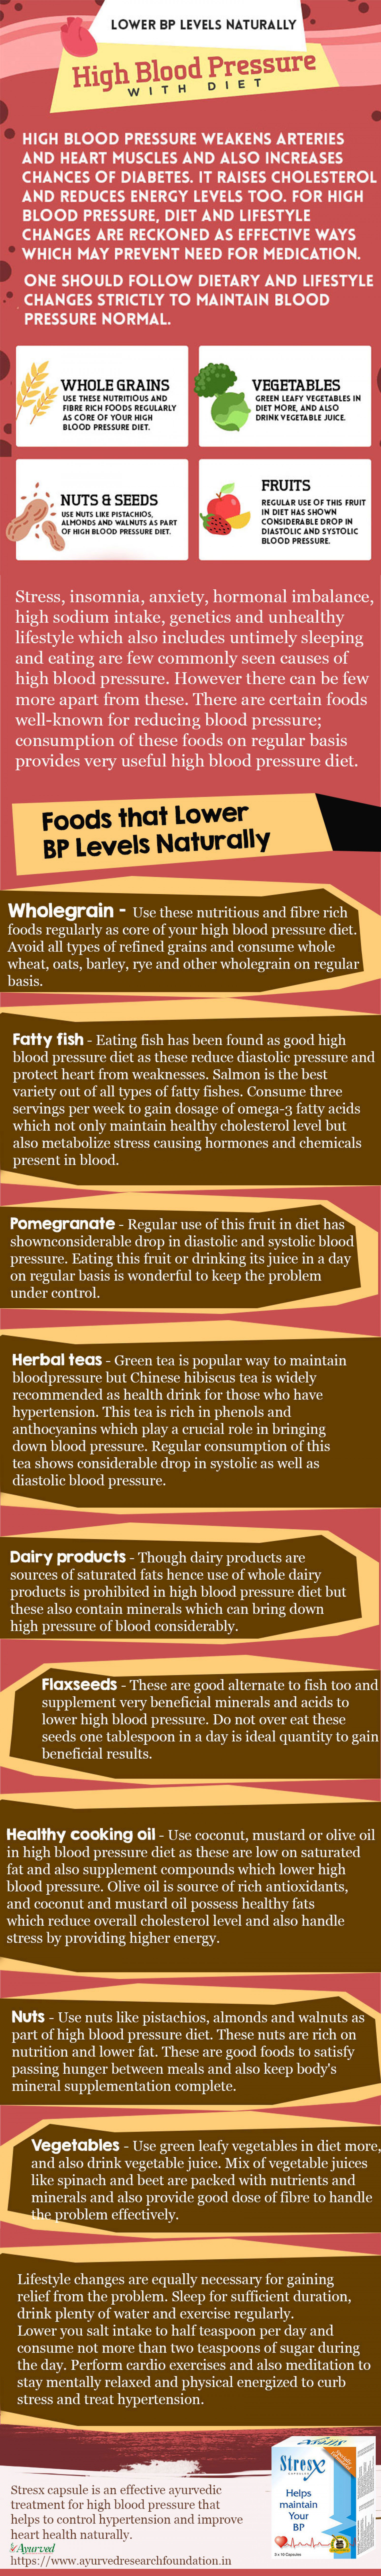 High Blood Pressure Diet Infographic, Foods that Lower BP Levels Naturally Infographic